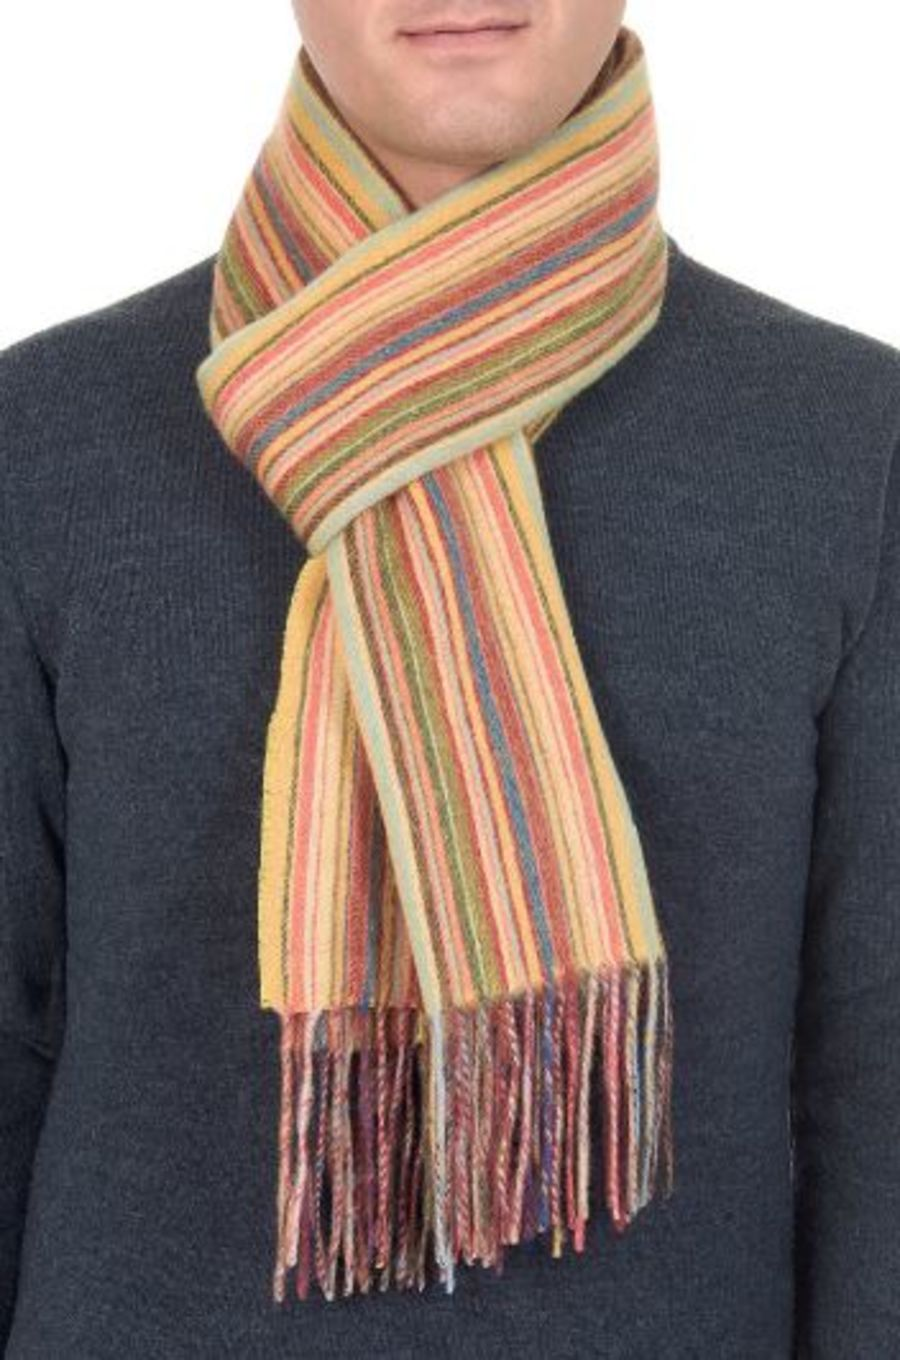 Classic Gents Style 100% Wool Scarf - PBY19W